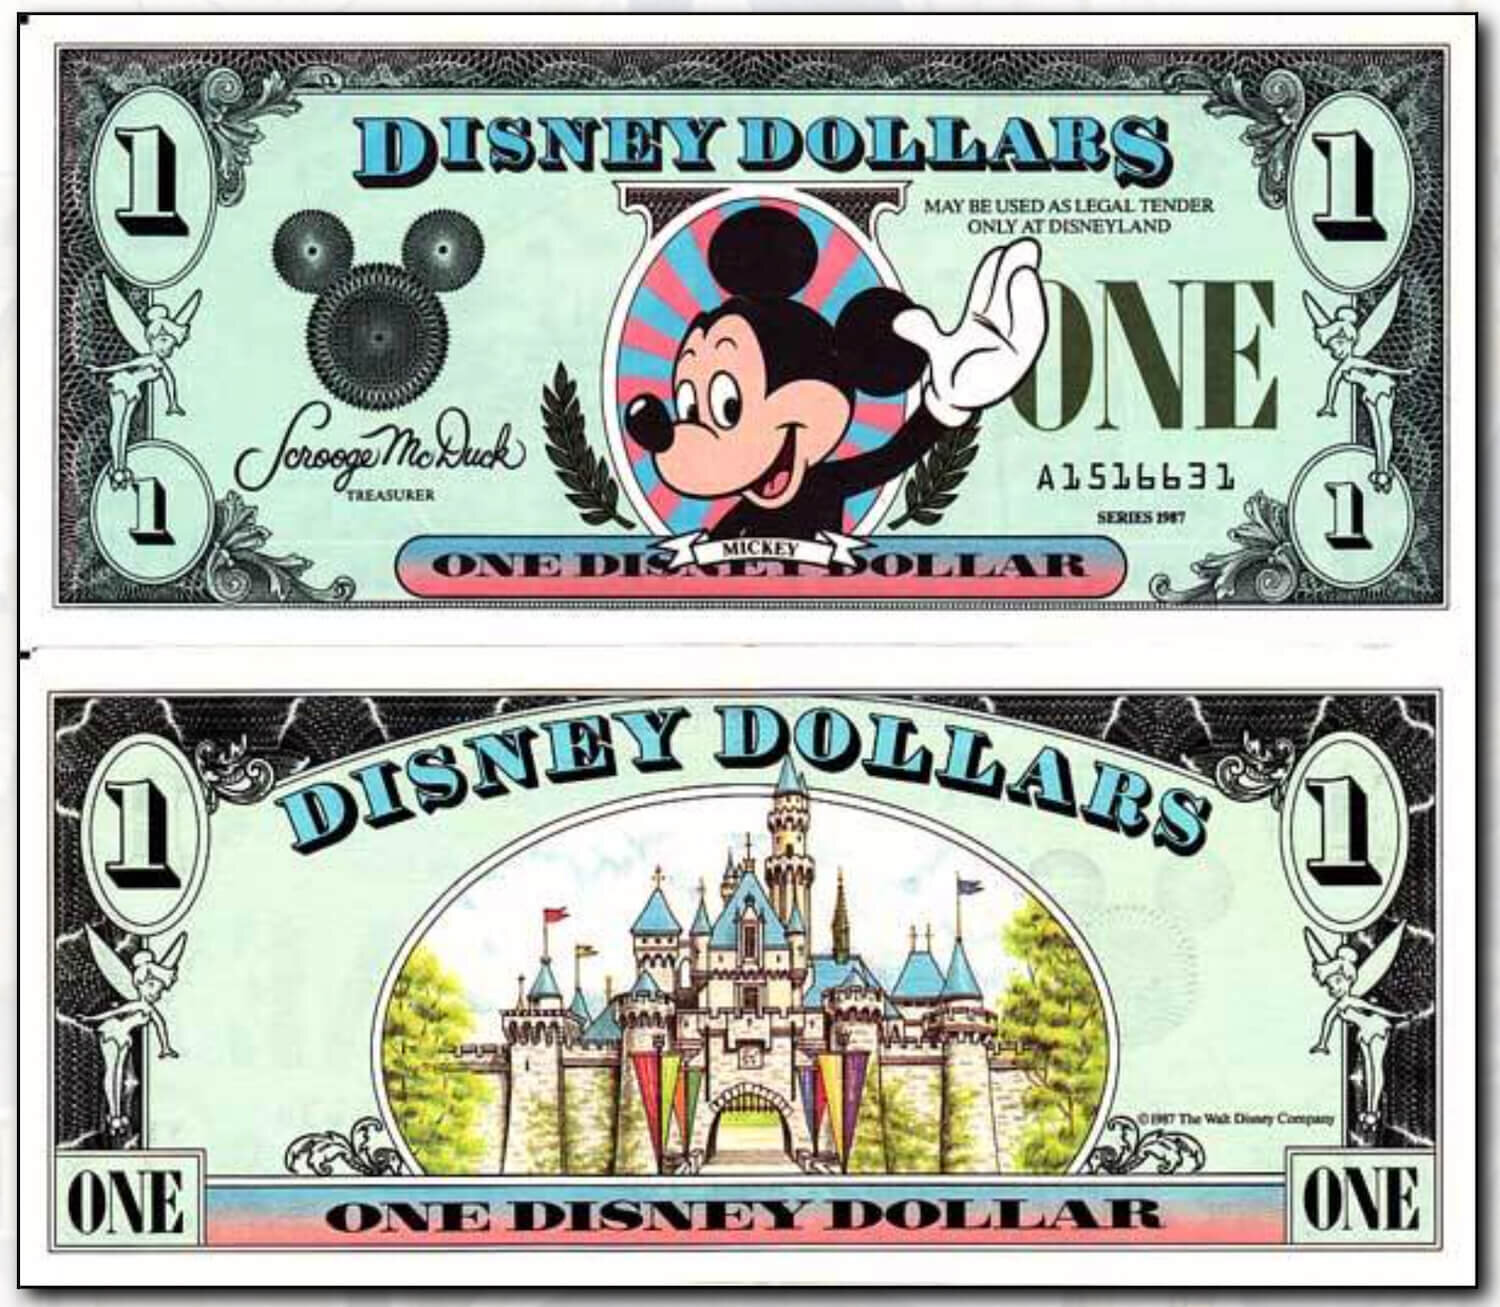 $1 Disneyland Mickey From 1987 - Courtesy of  http://www.disneydollars.net